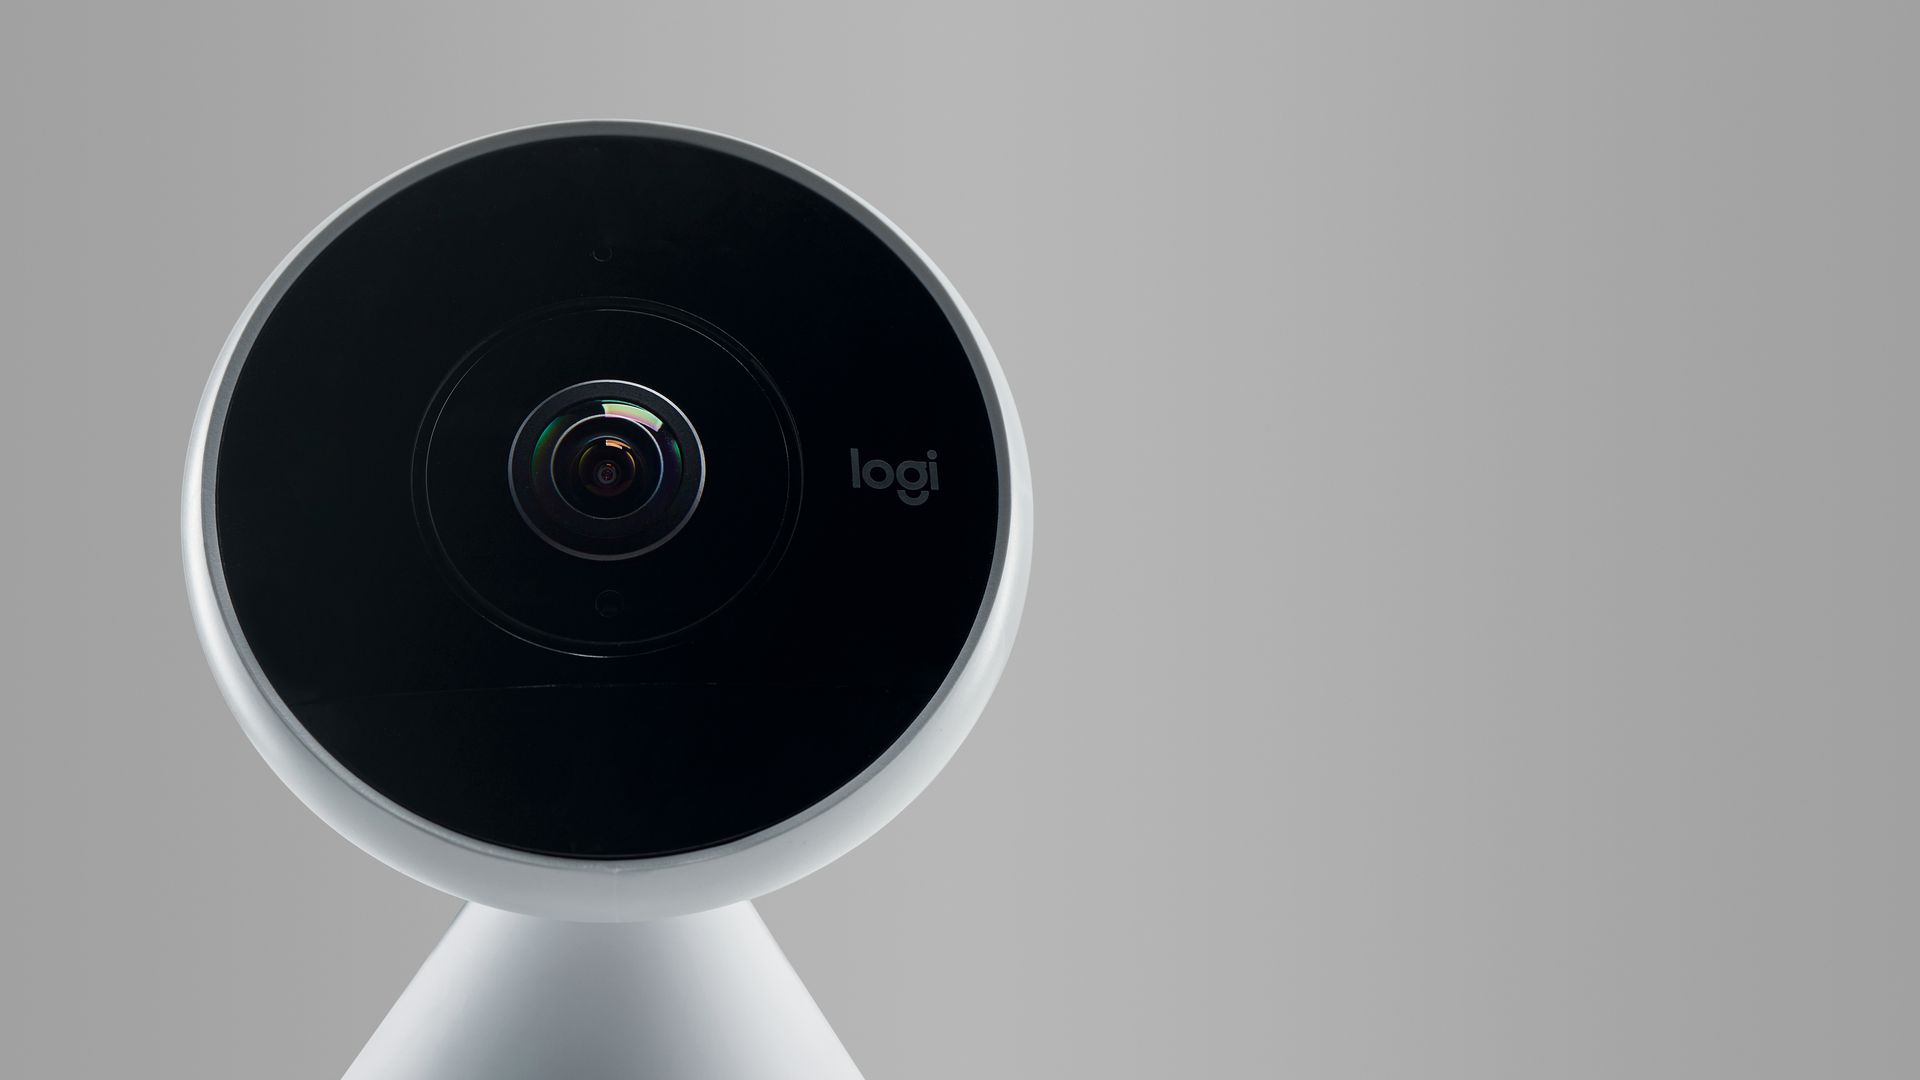 A smart home security camera